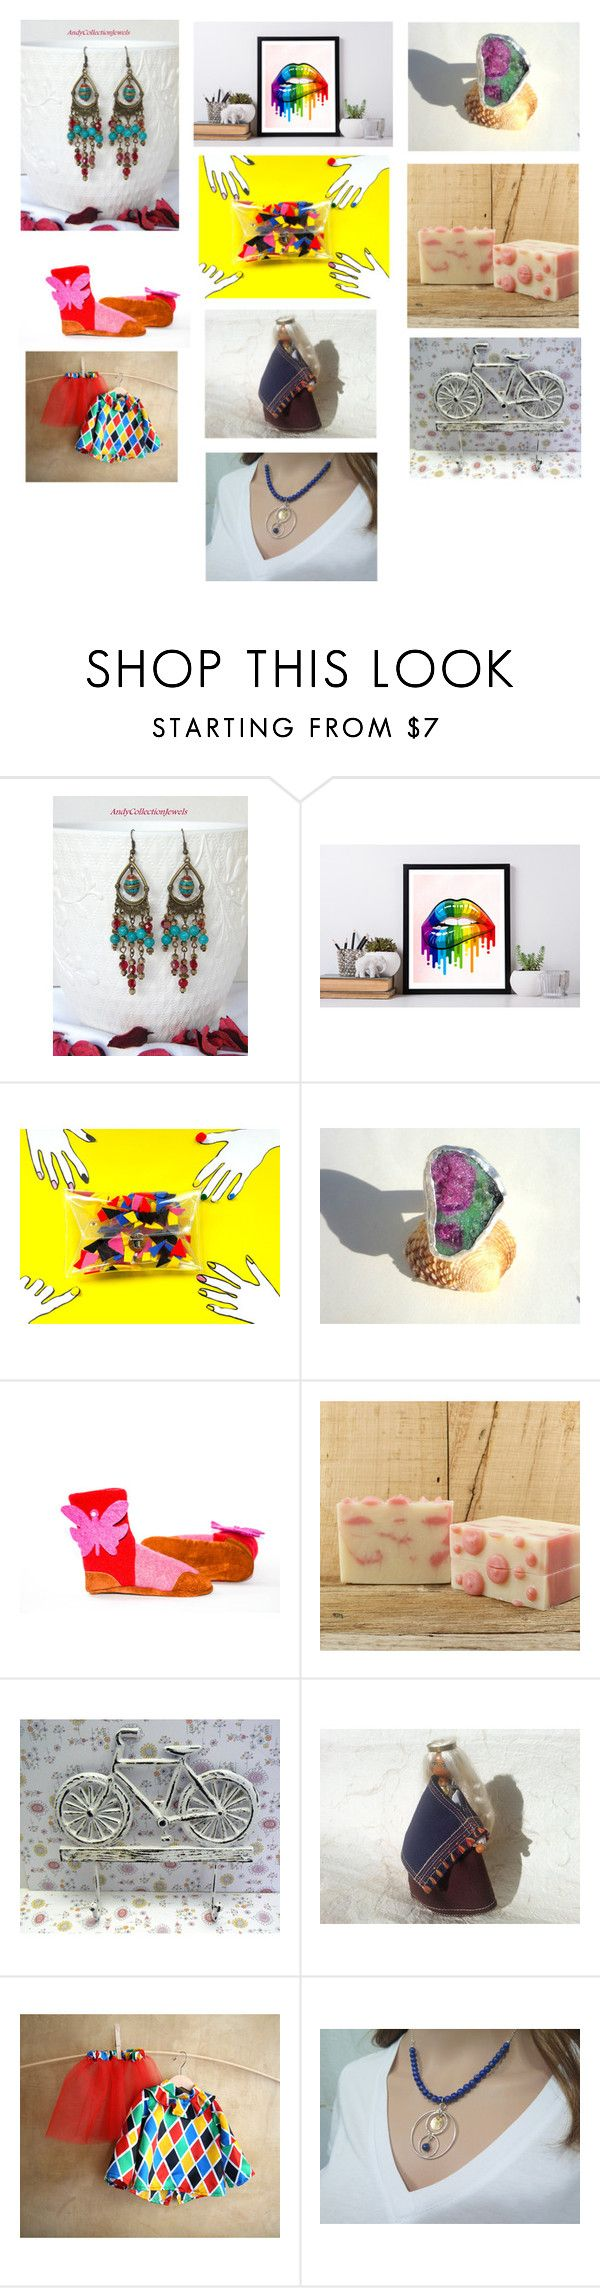 Best gift ideas on Etsy by luckystanlv on Polyvore featuring interior, interiors, interior design, home, home decor and interior decorating